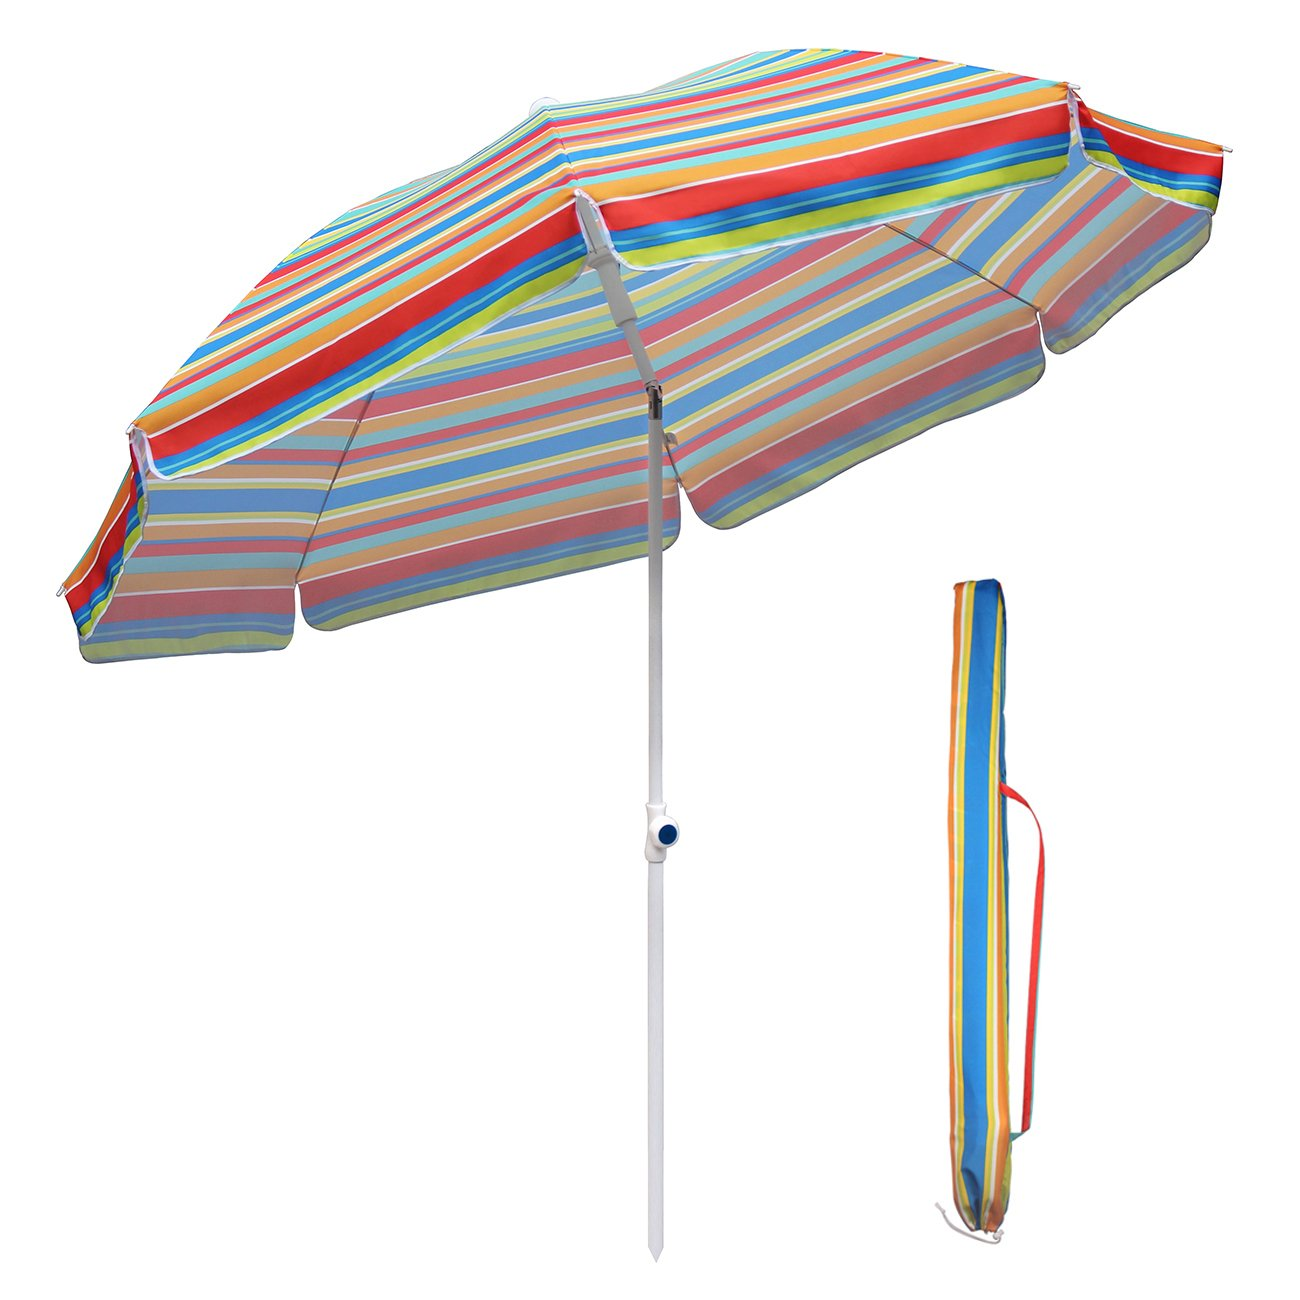 Sekey 7 Feet Beach Umbrella With Tilt Mechanism and Carrying Case,Round Screen,UPF 25,Color Blue and Yellow Stripe,Perfect For Beach, Camping, Sports, Gardens, Balcony and Patio